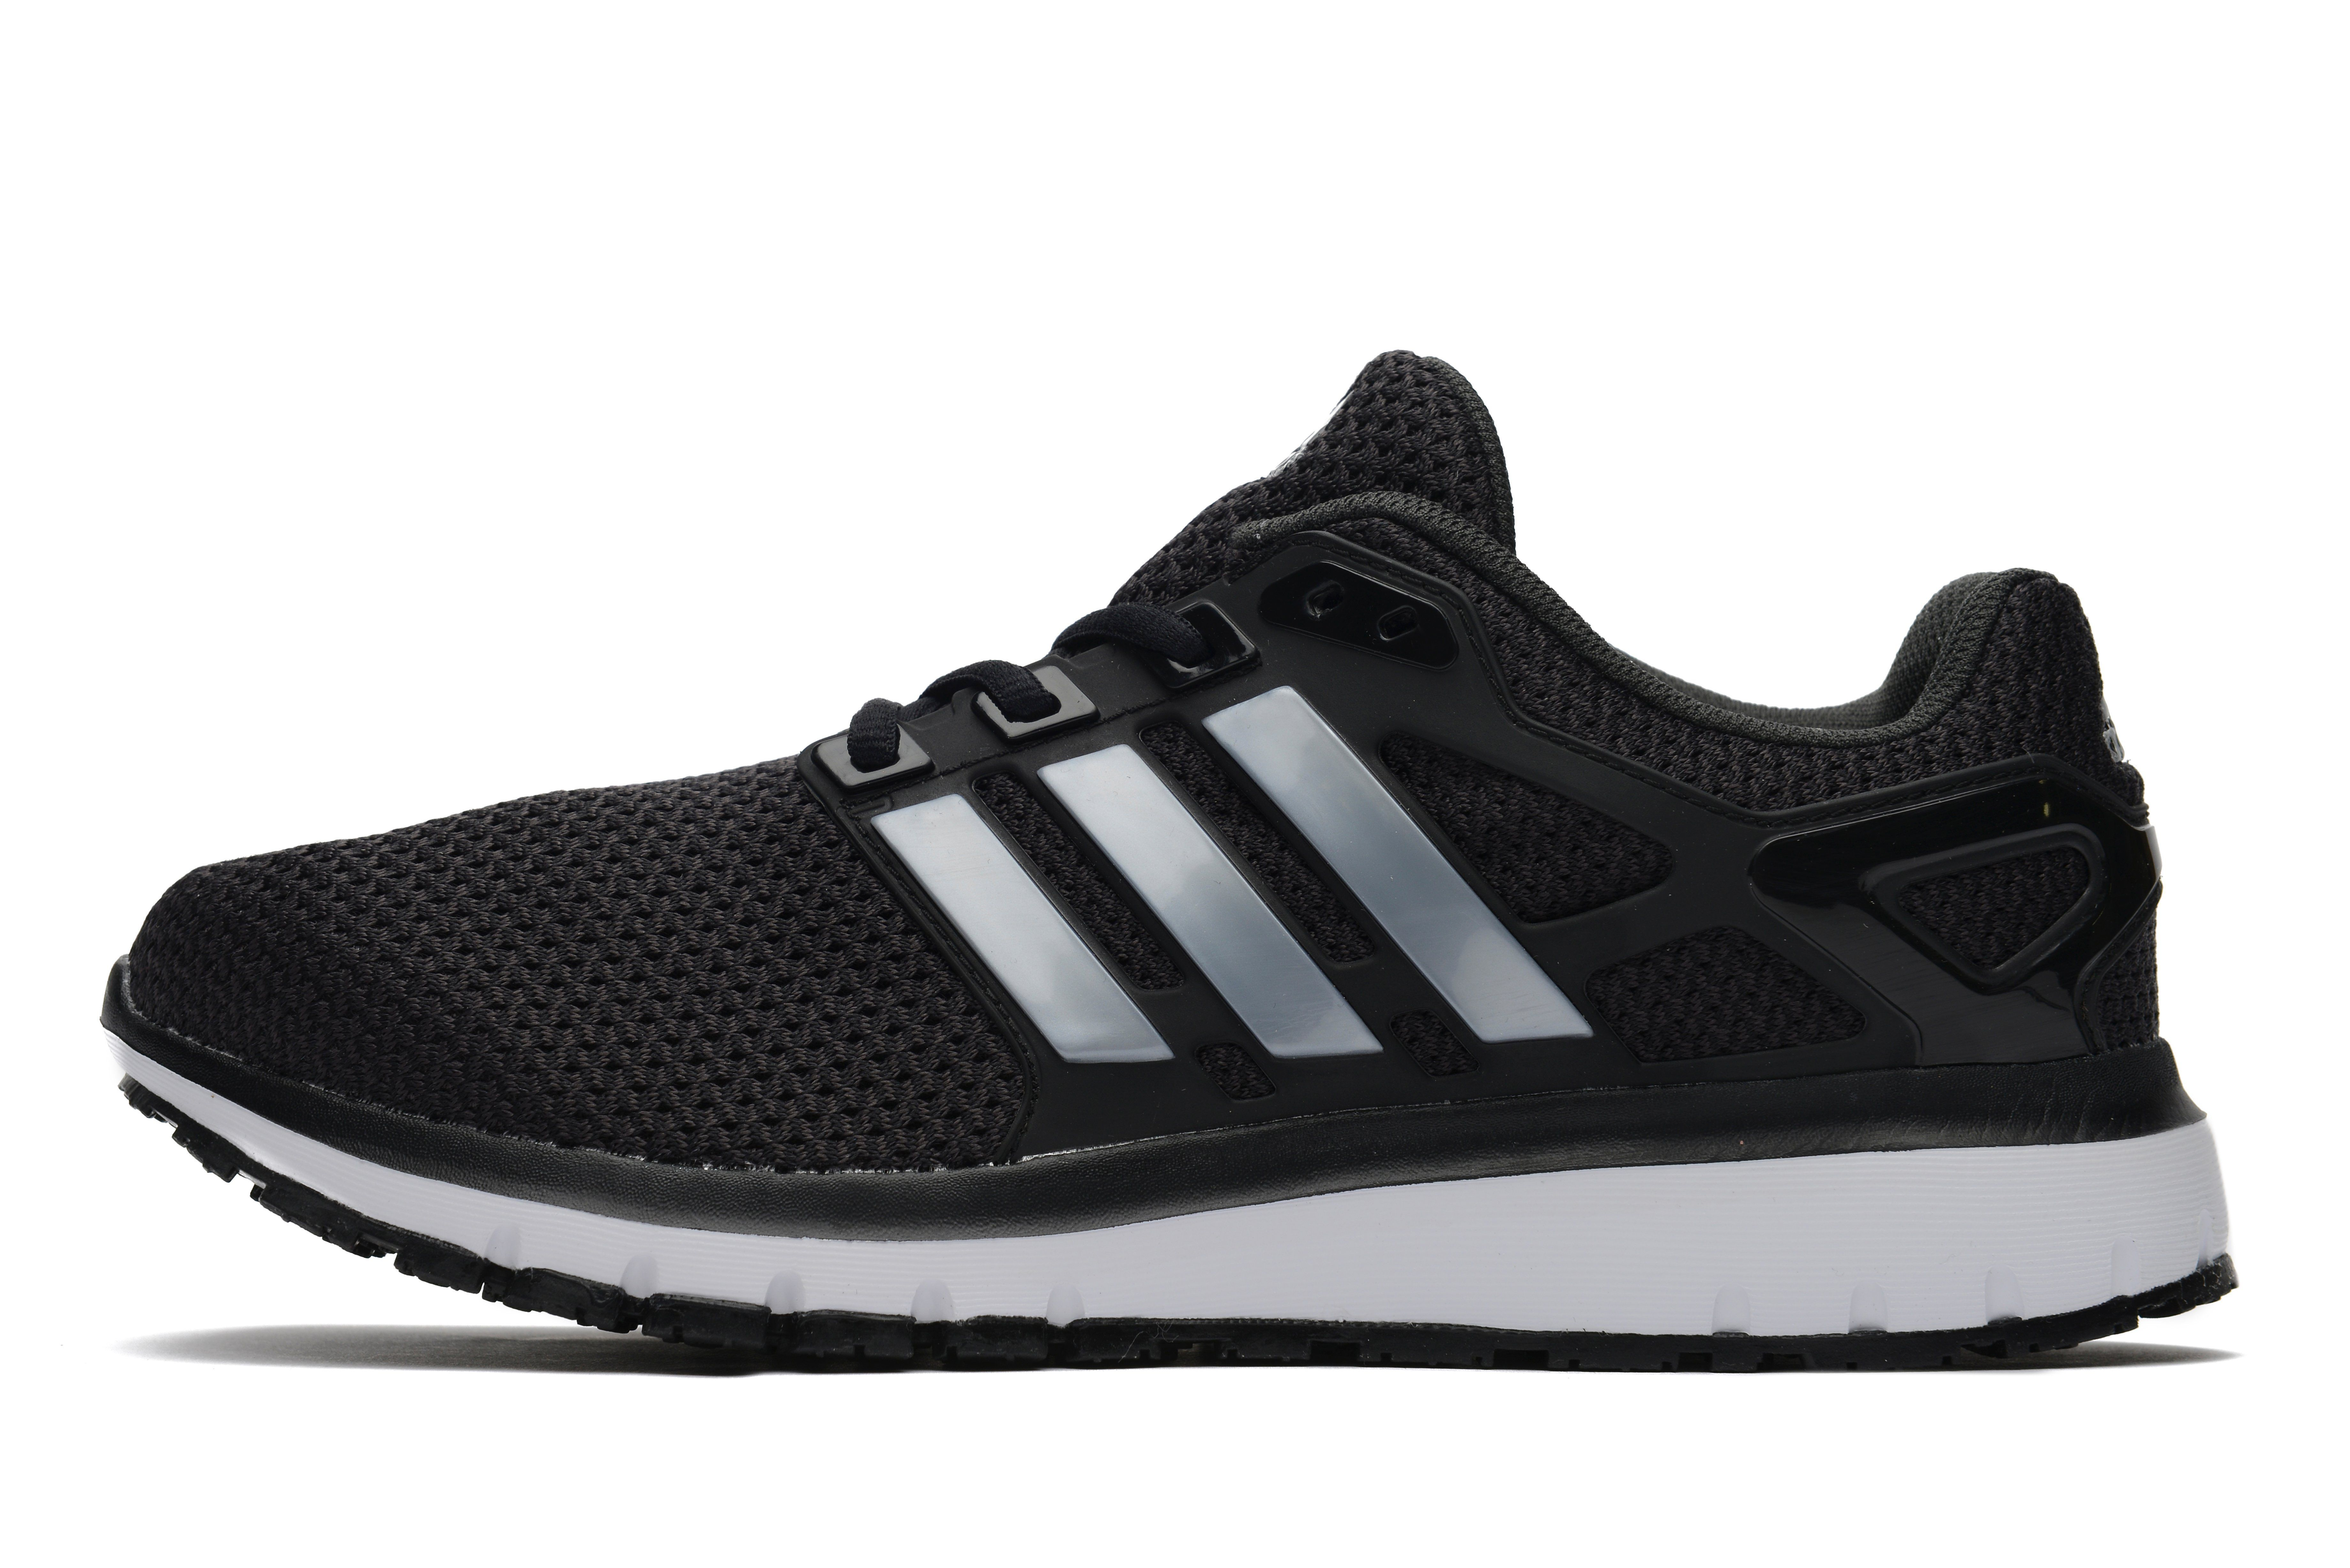 adidas Energy Cloud - Shop online for adidas Energy Cloud with JD Sports,  the UK